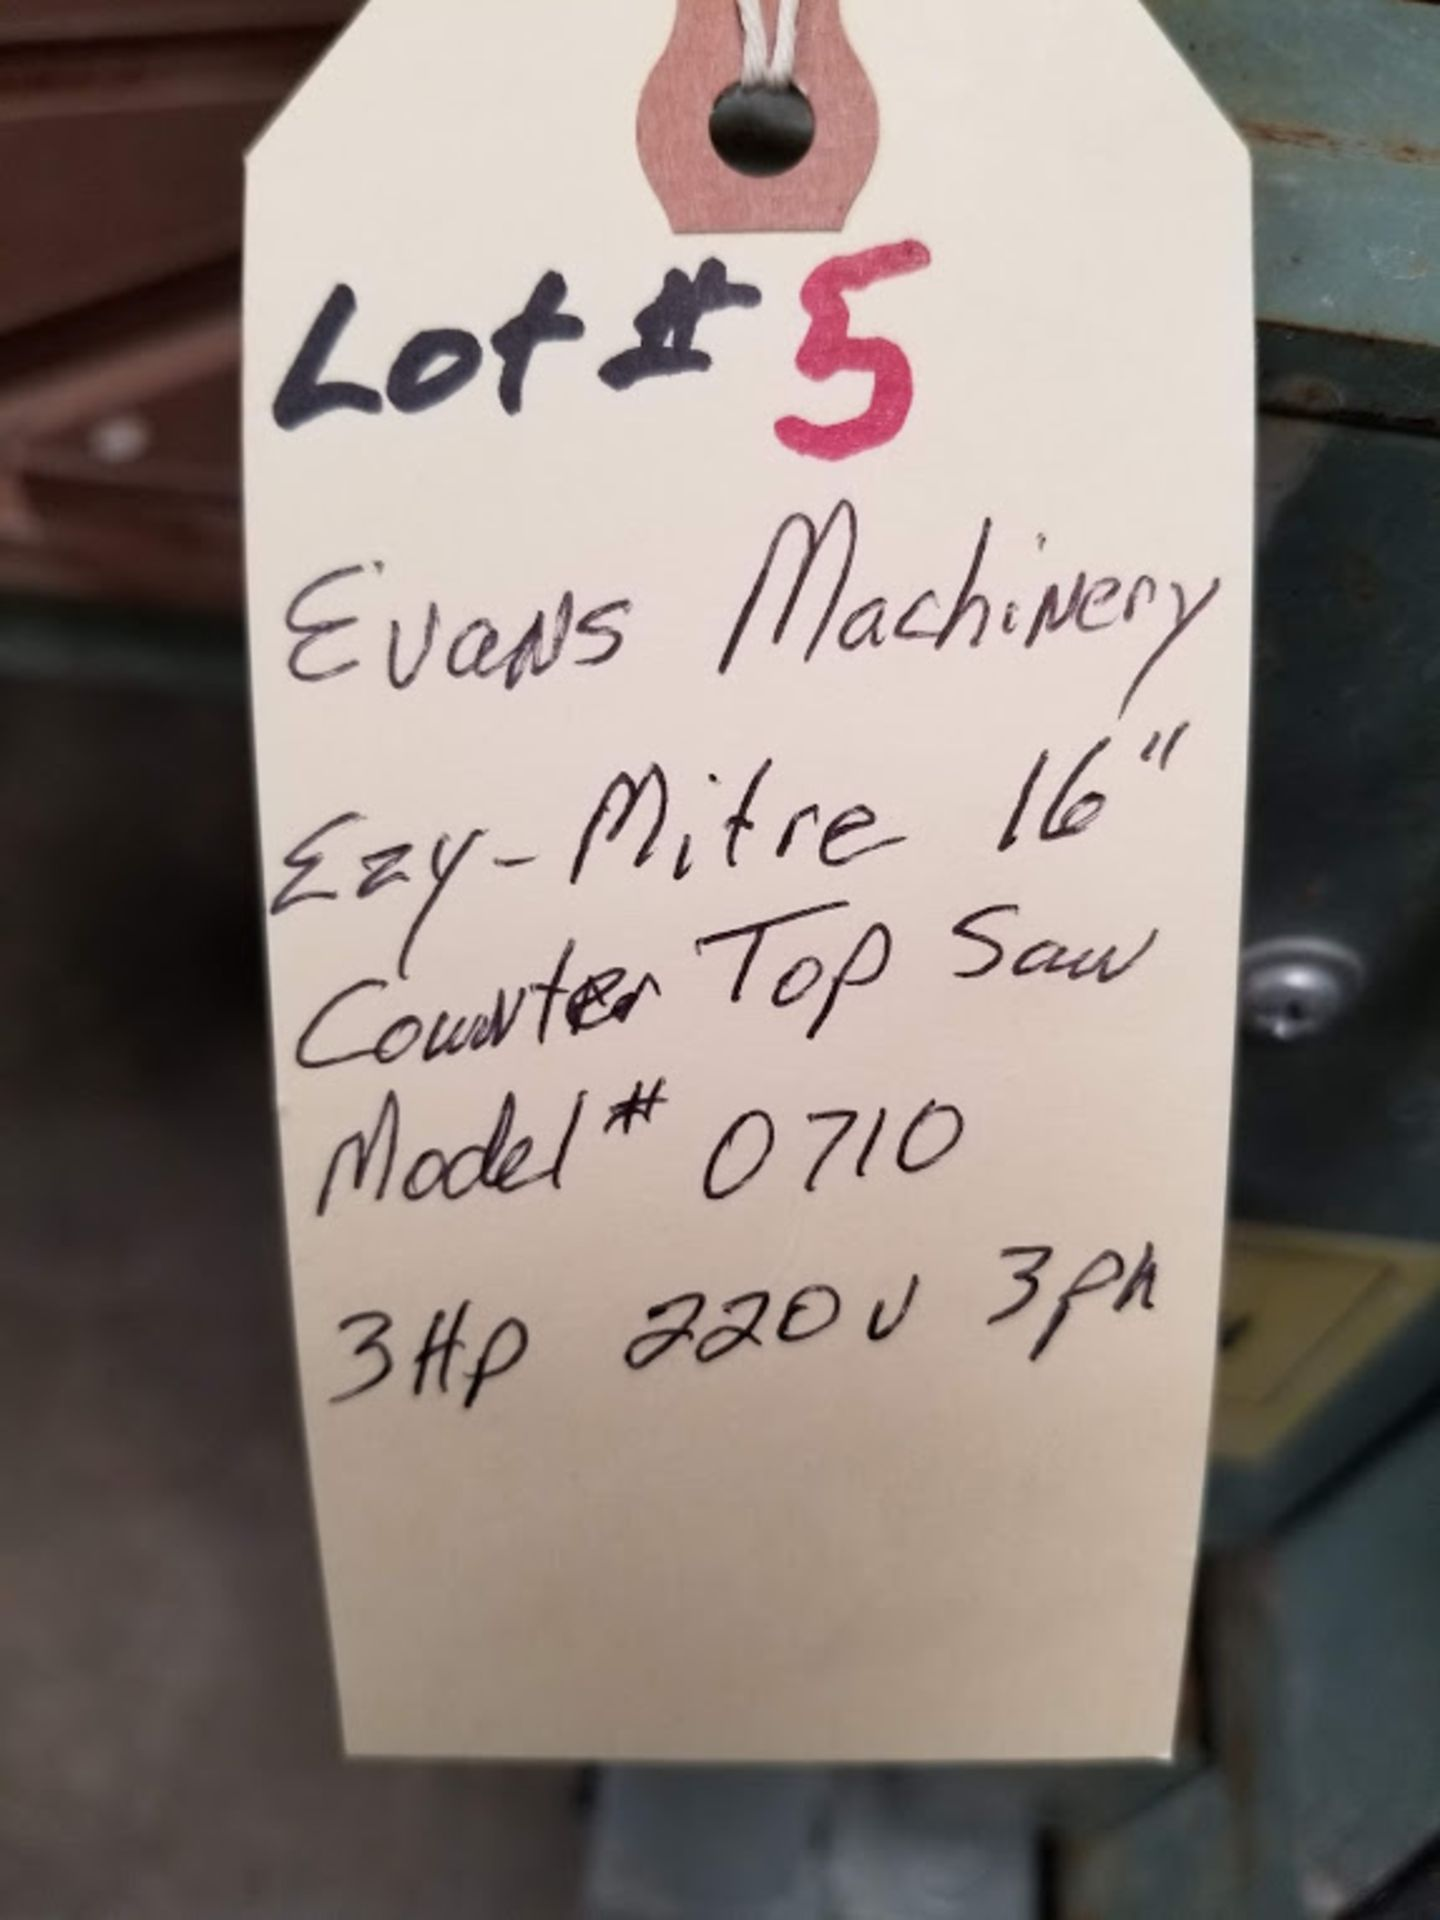 """Lot 5 - Evans Machinery Ezy-Mitre 16"""" Counter Top Saw, Model #0710, 3 Hp 220 volt 3 phase"""